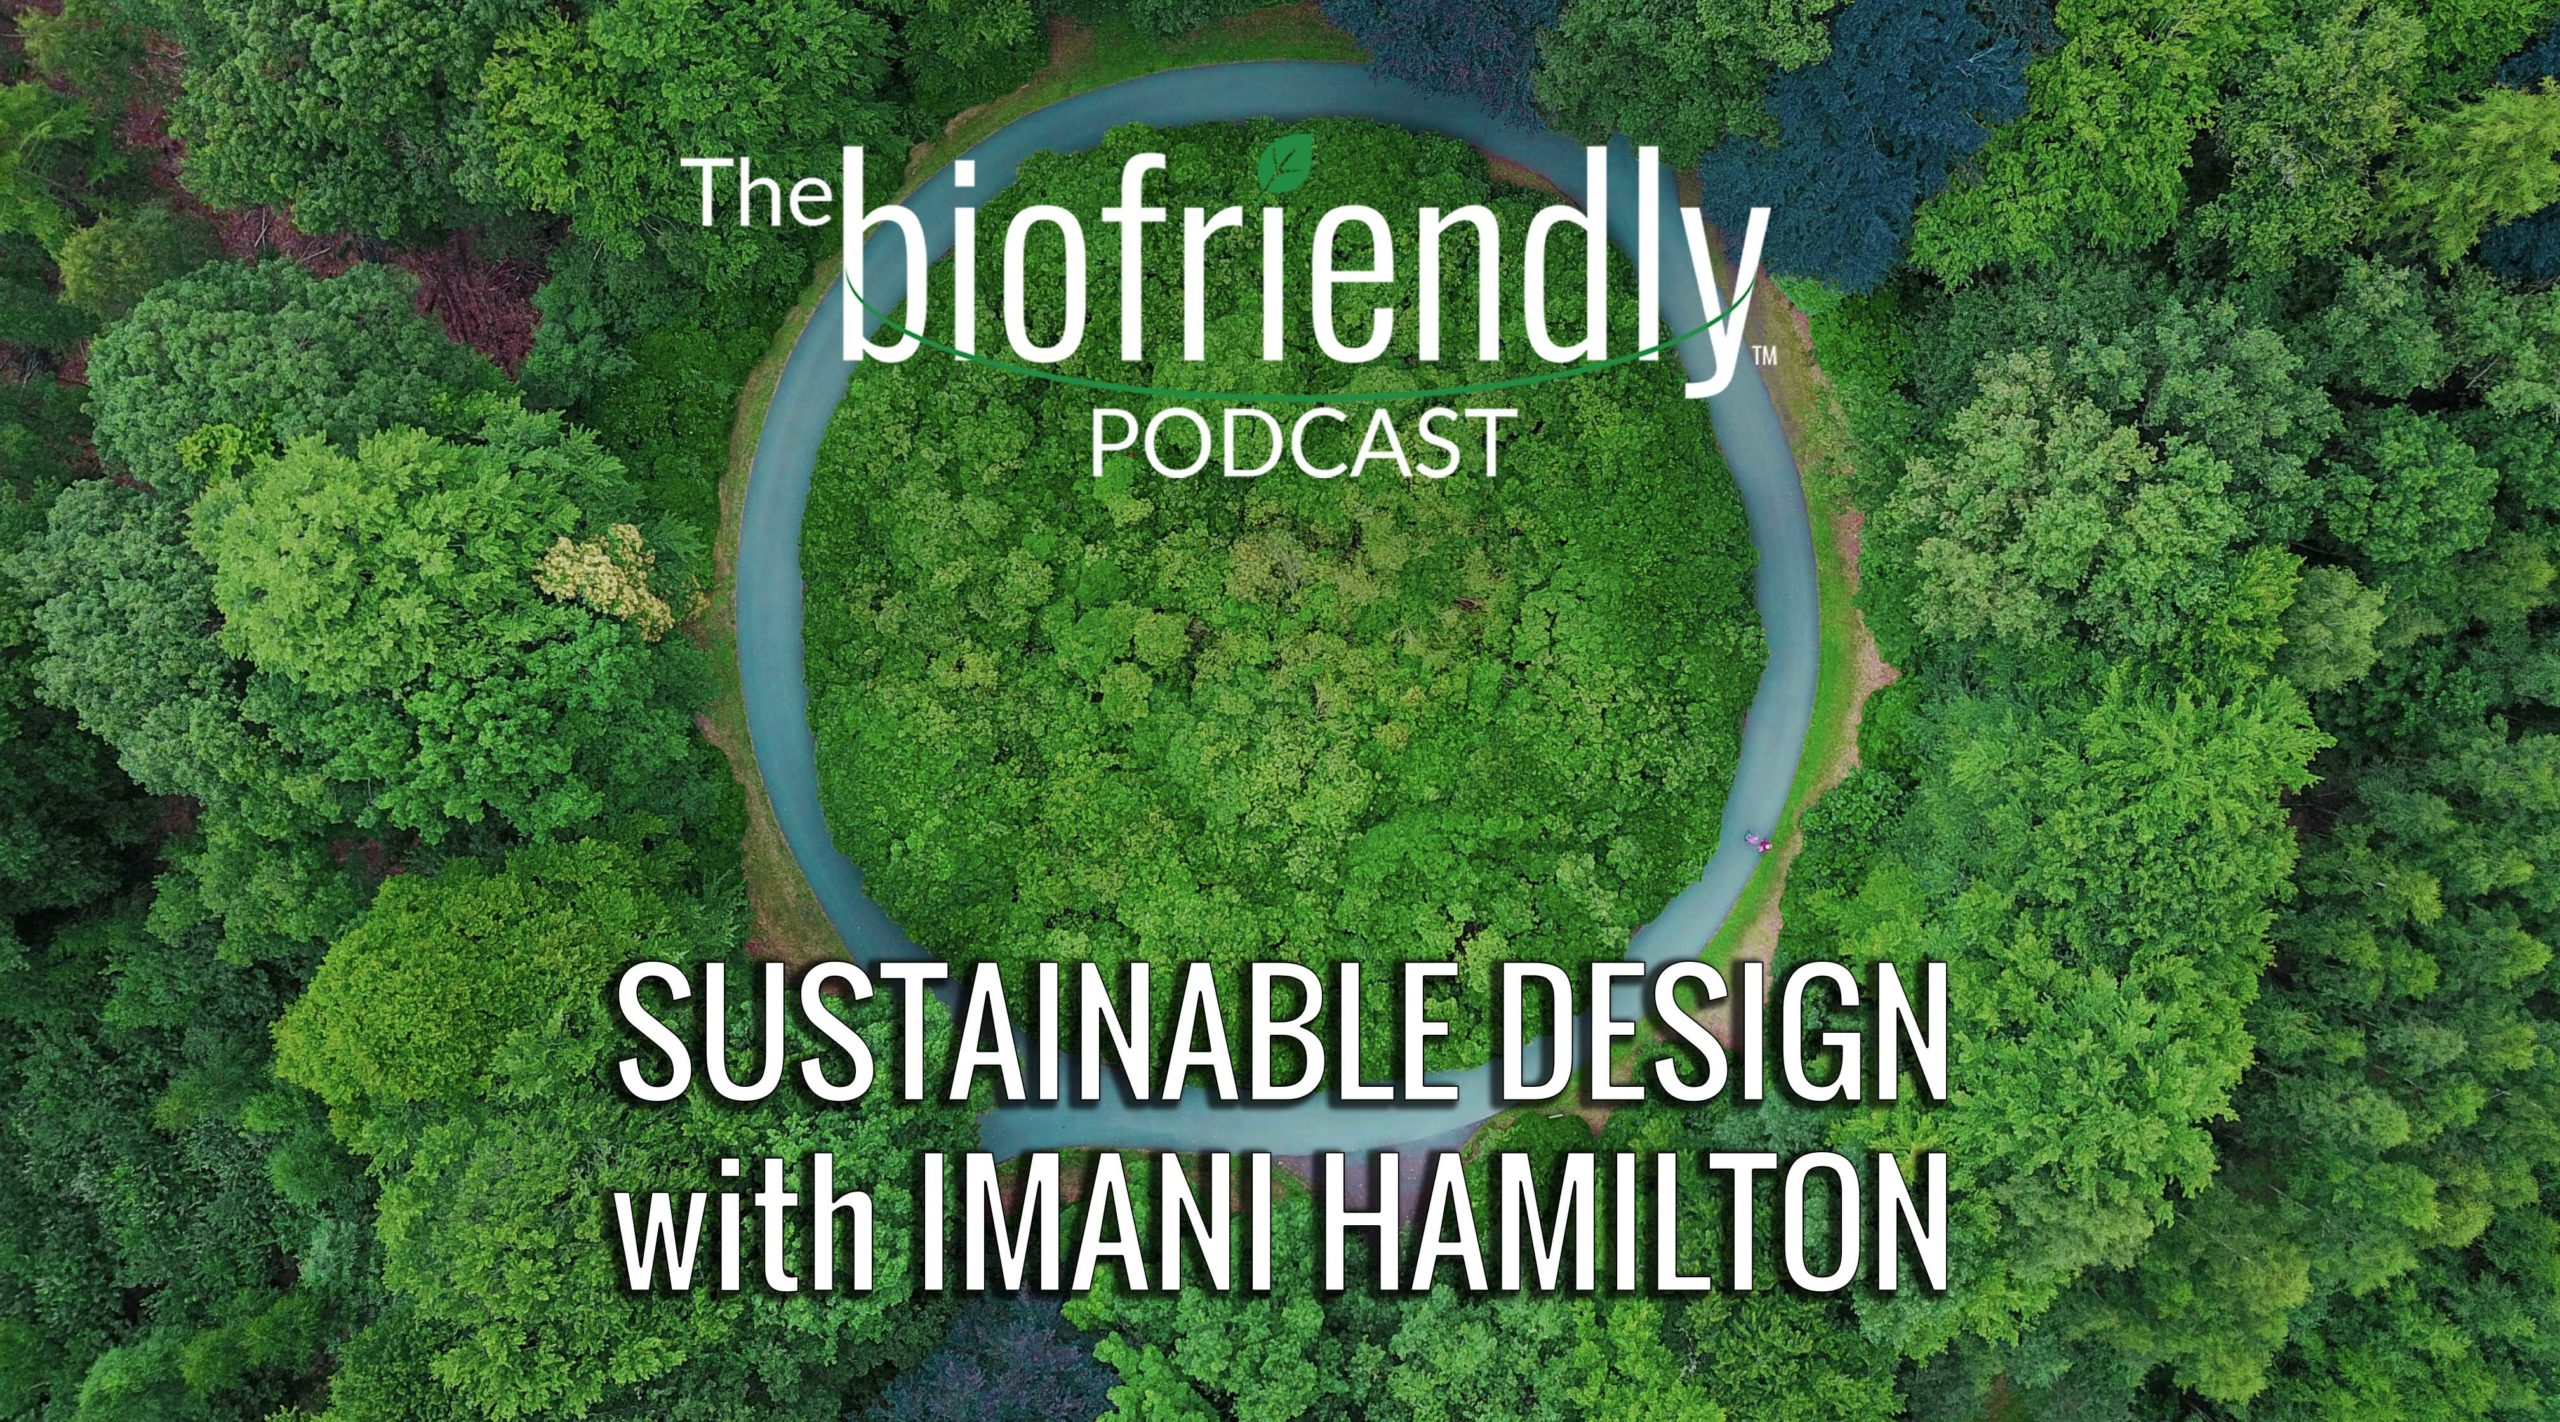 The Biofriendly Podcast - Episode 87 - Sustainable Design with Imani Hamilton